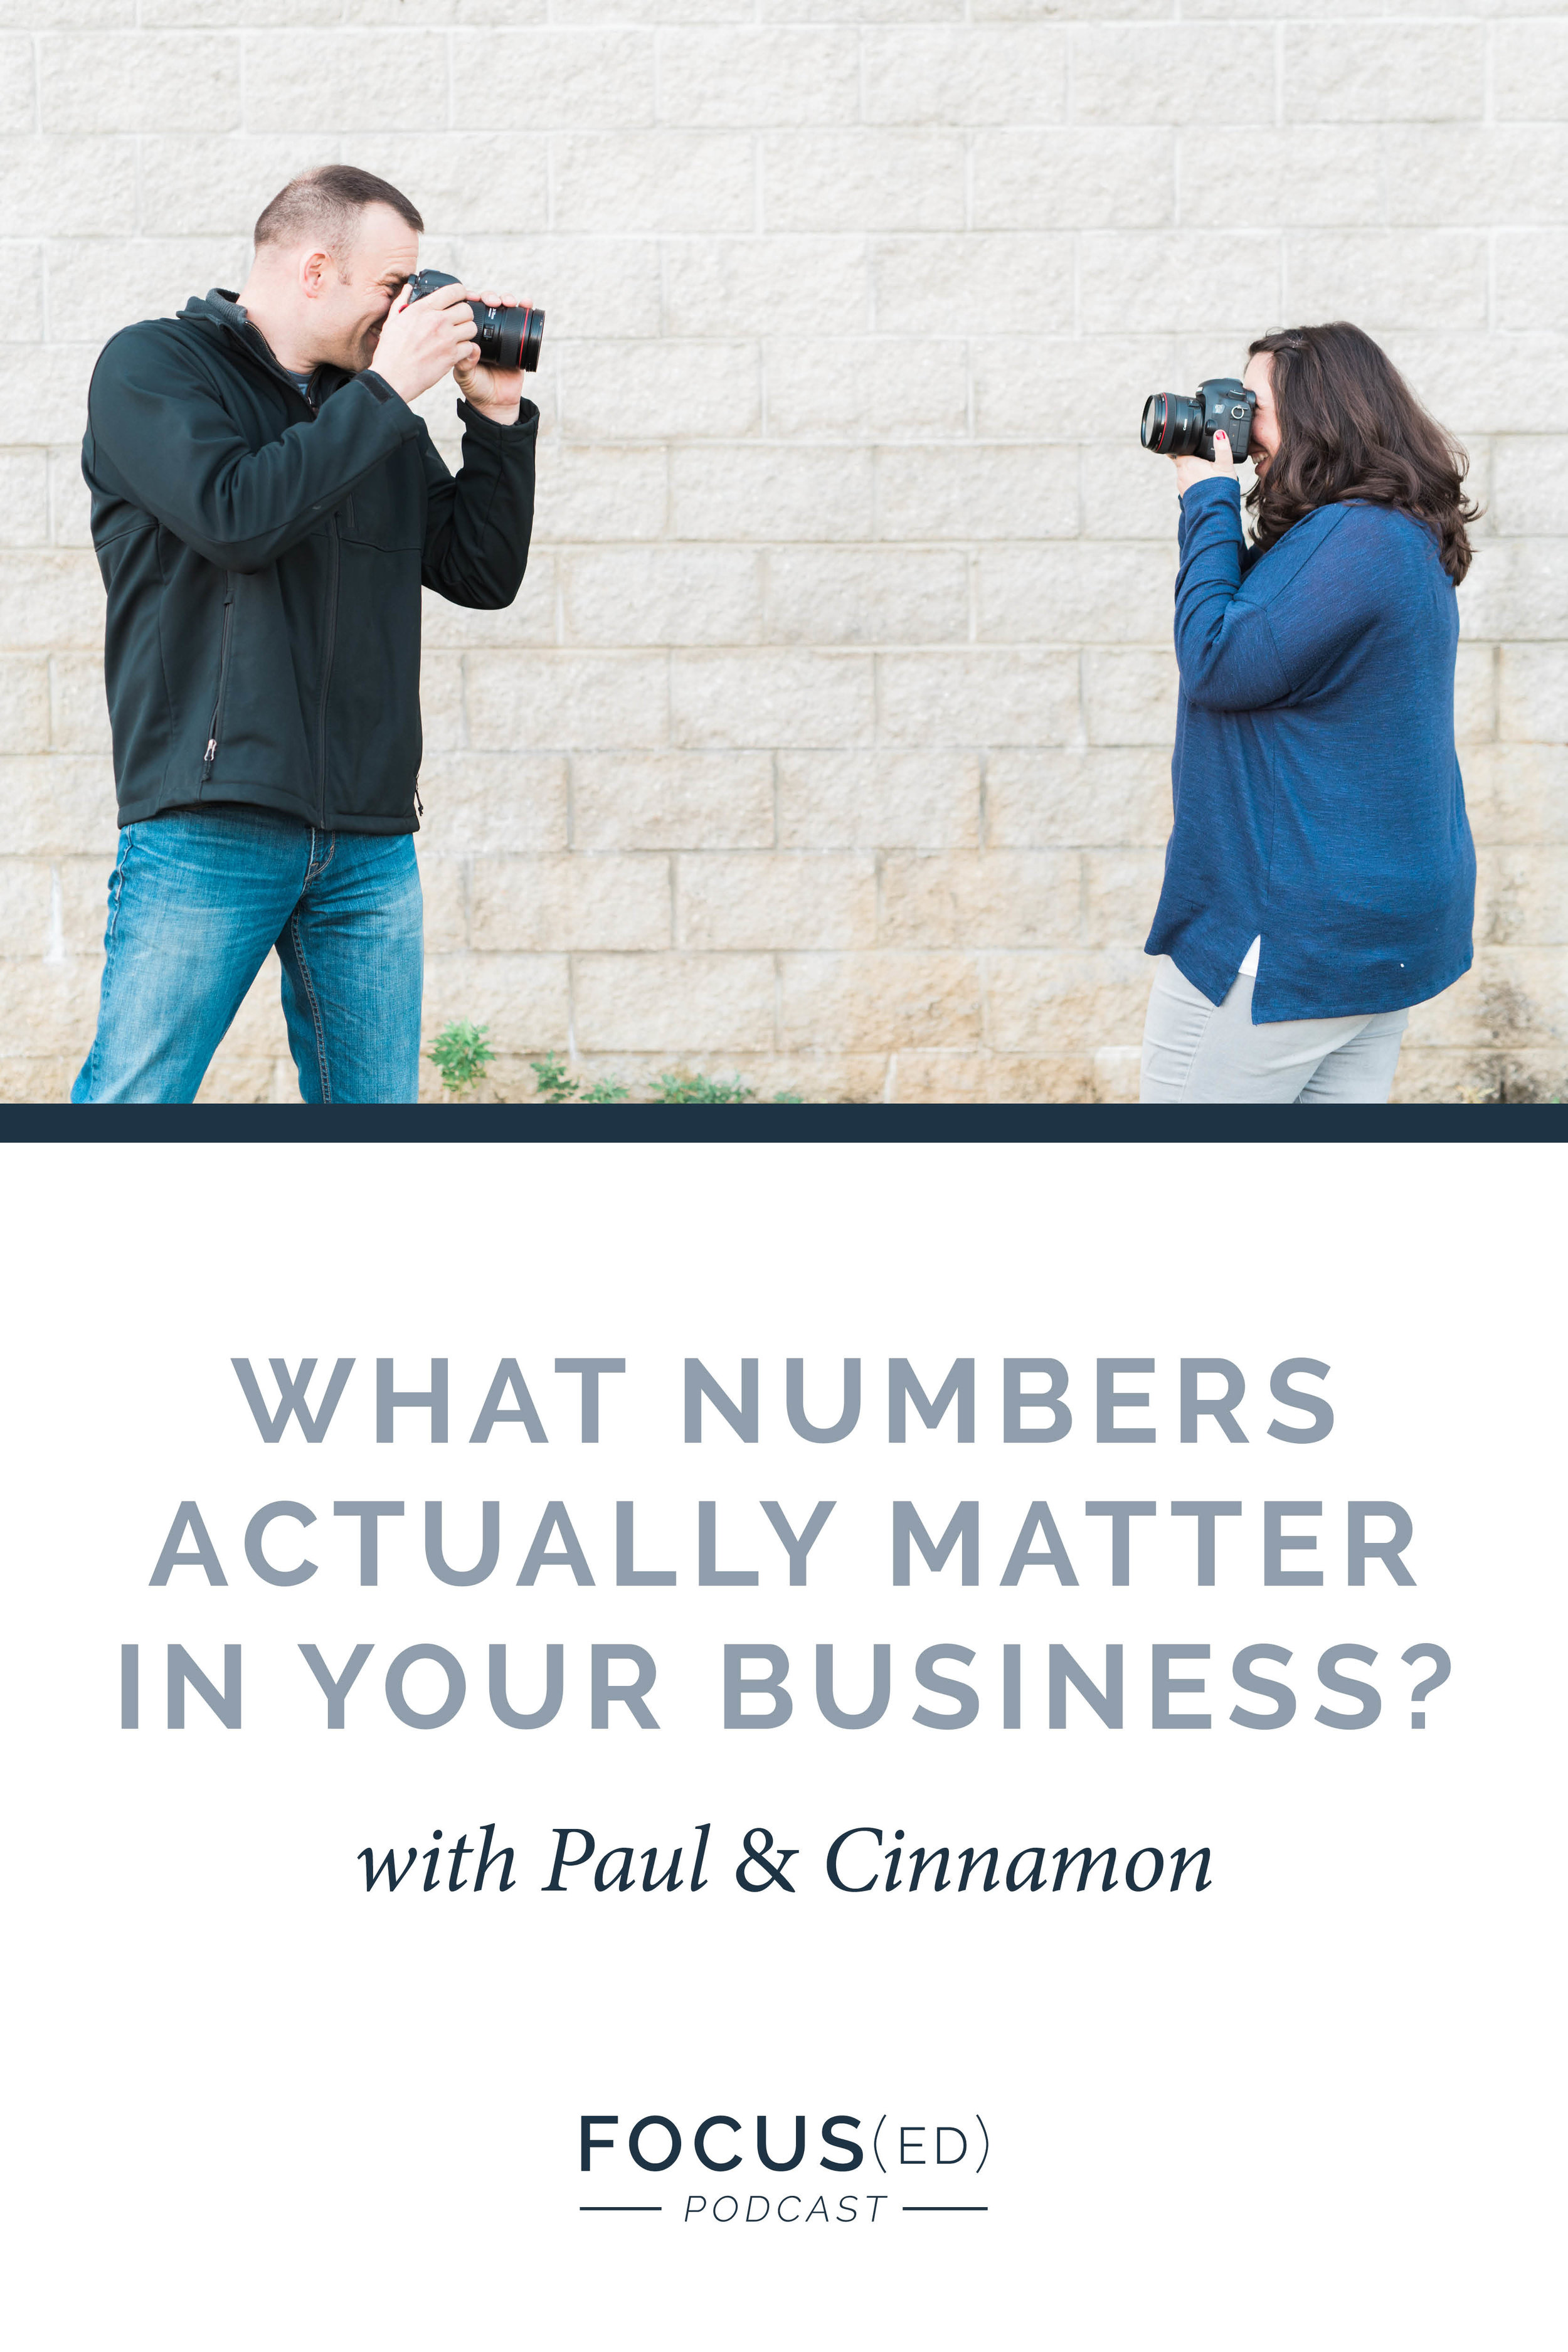 What numbers actually matter in your business?